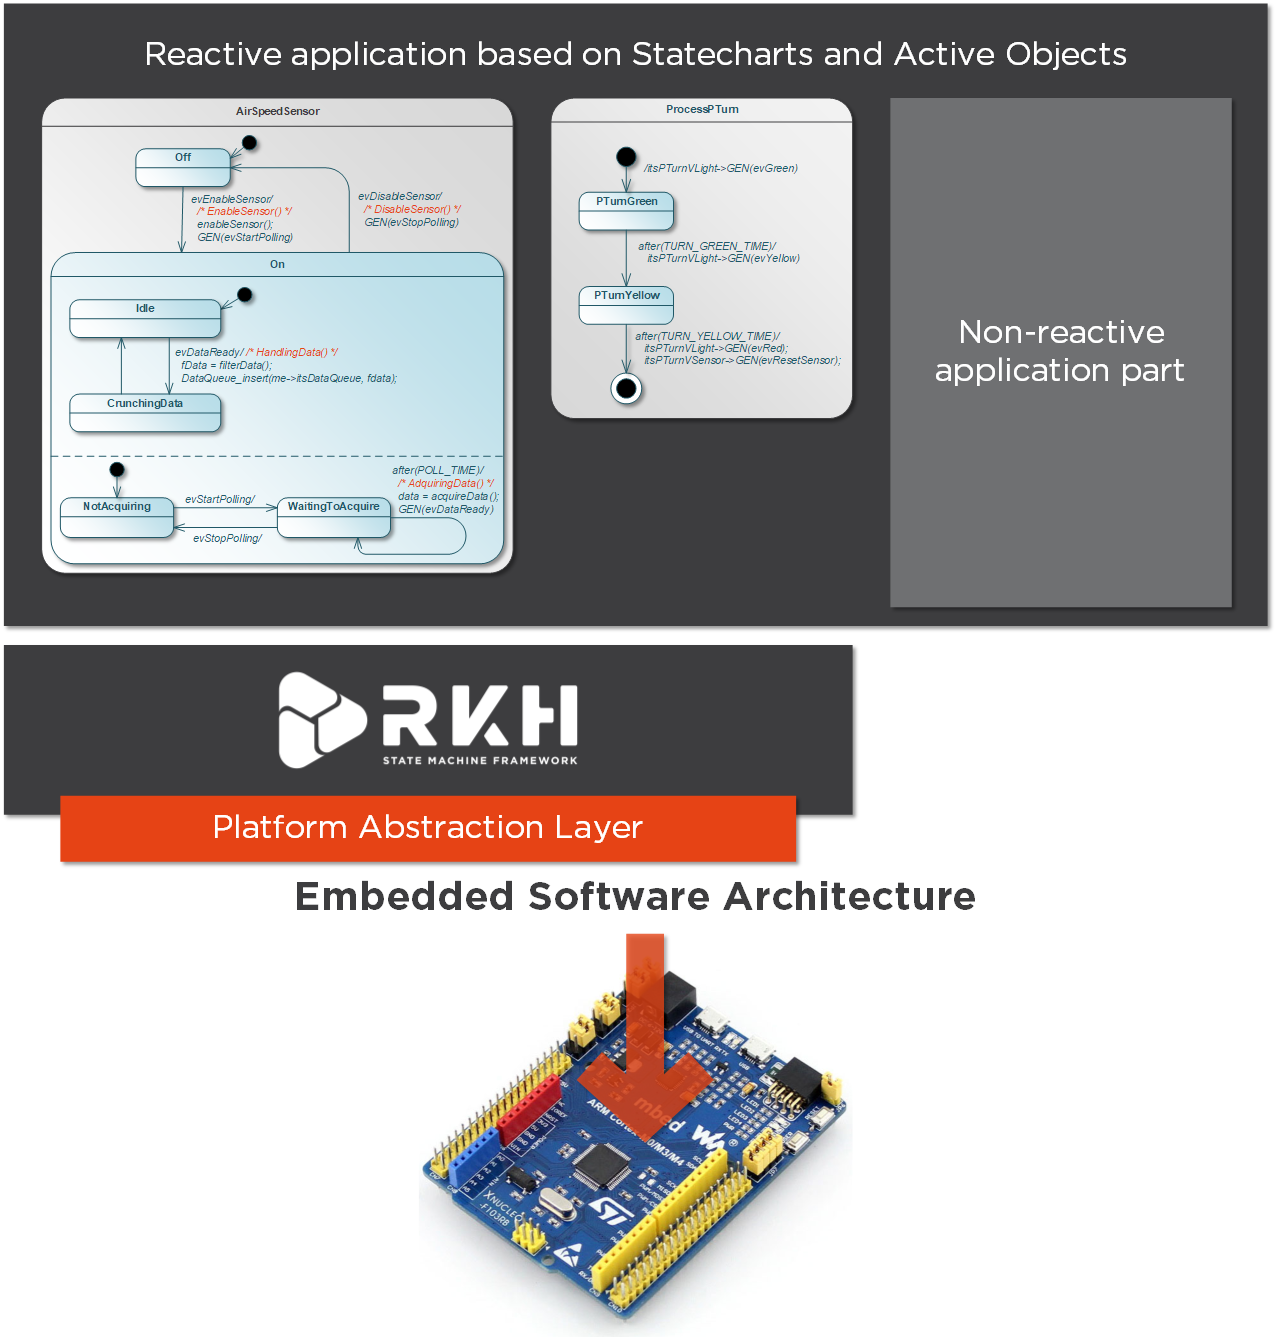 infografic showing a state machine snippet plus embedded software architecture